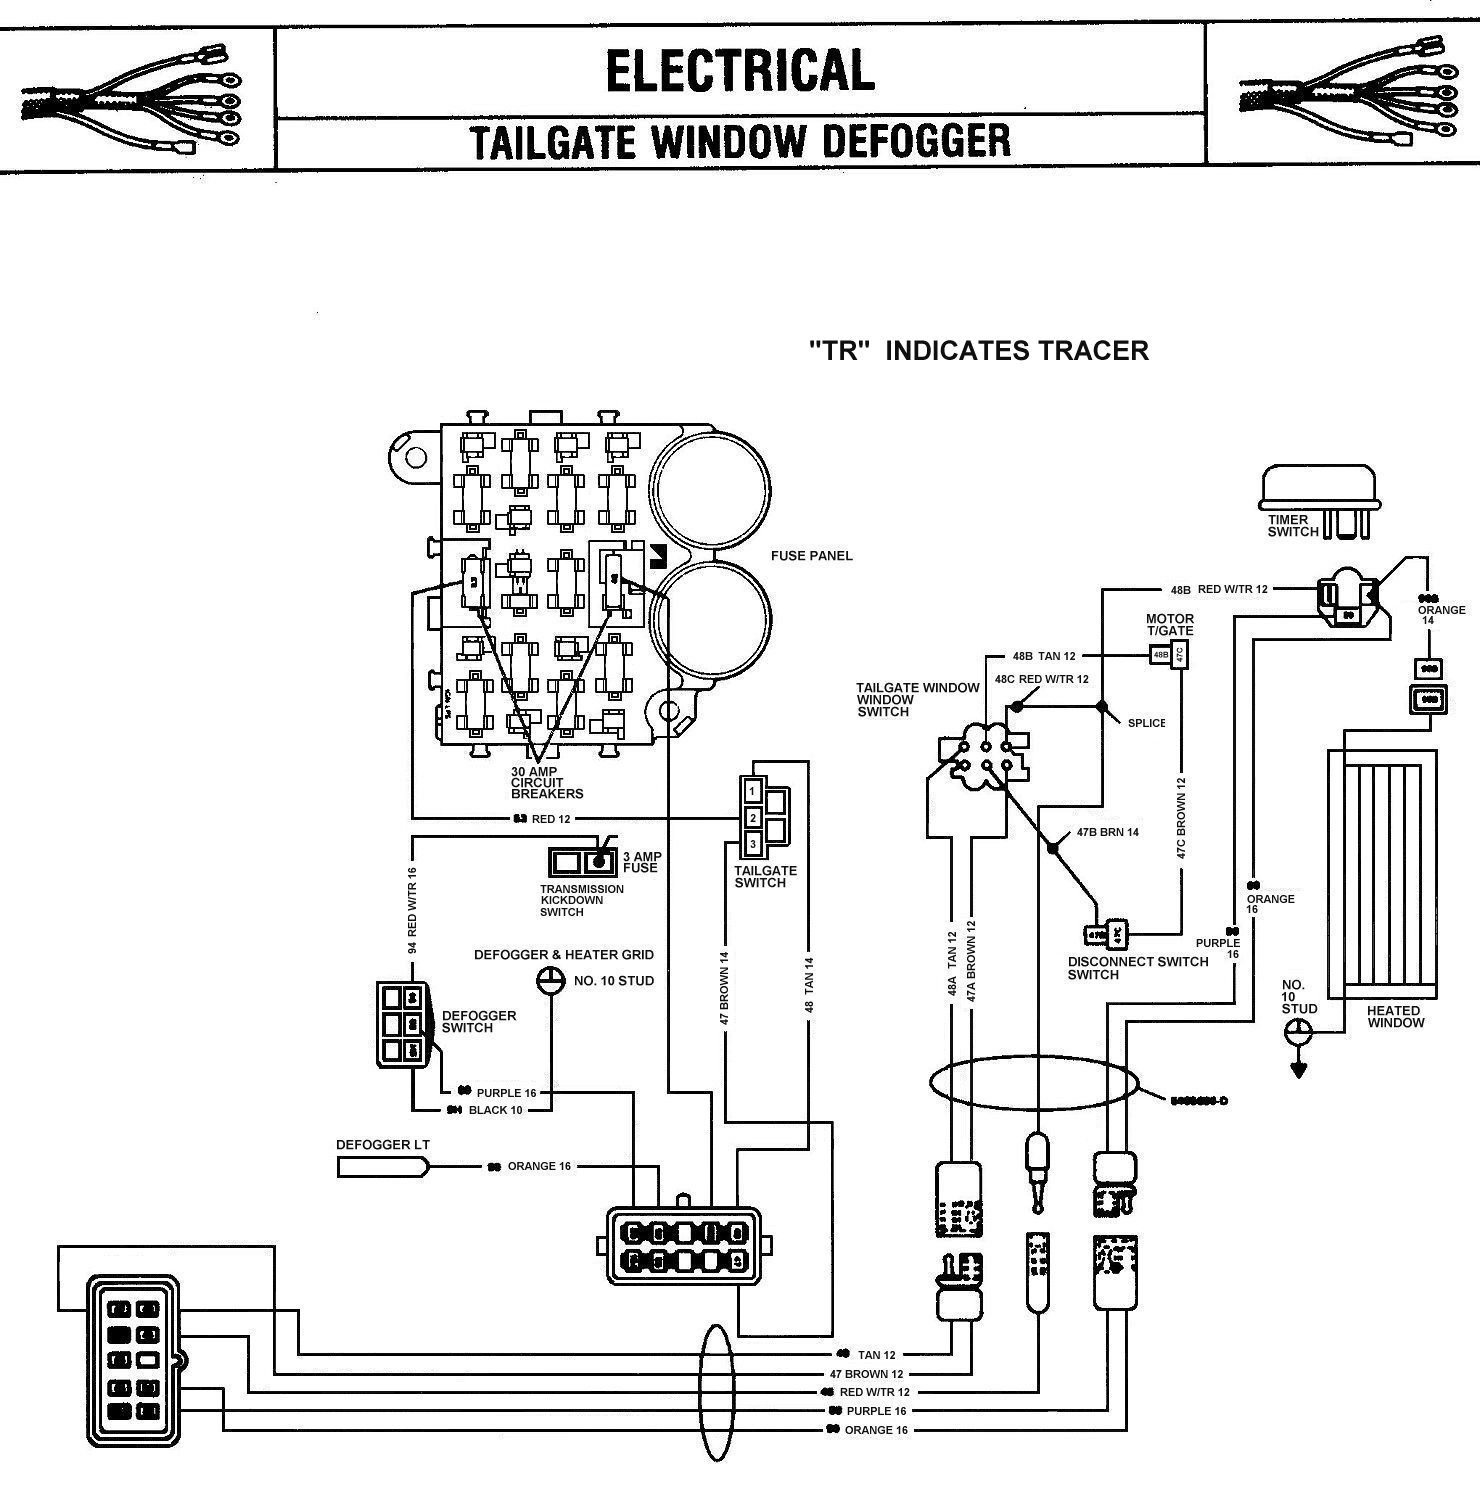 1984 Jeep Cherokee Wiring Schematic - Wiring Diagram •